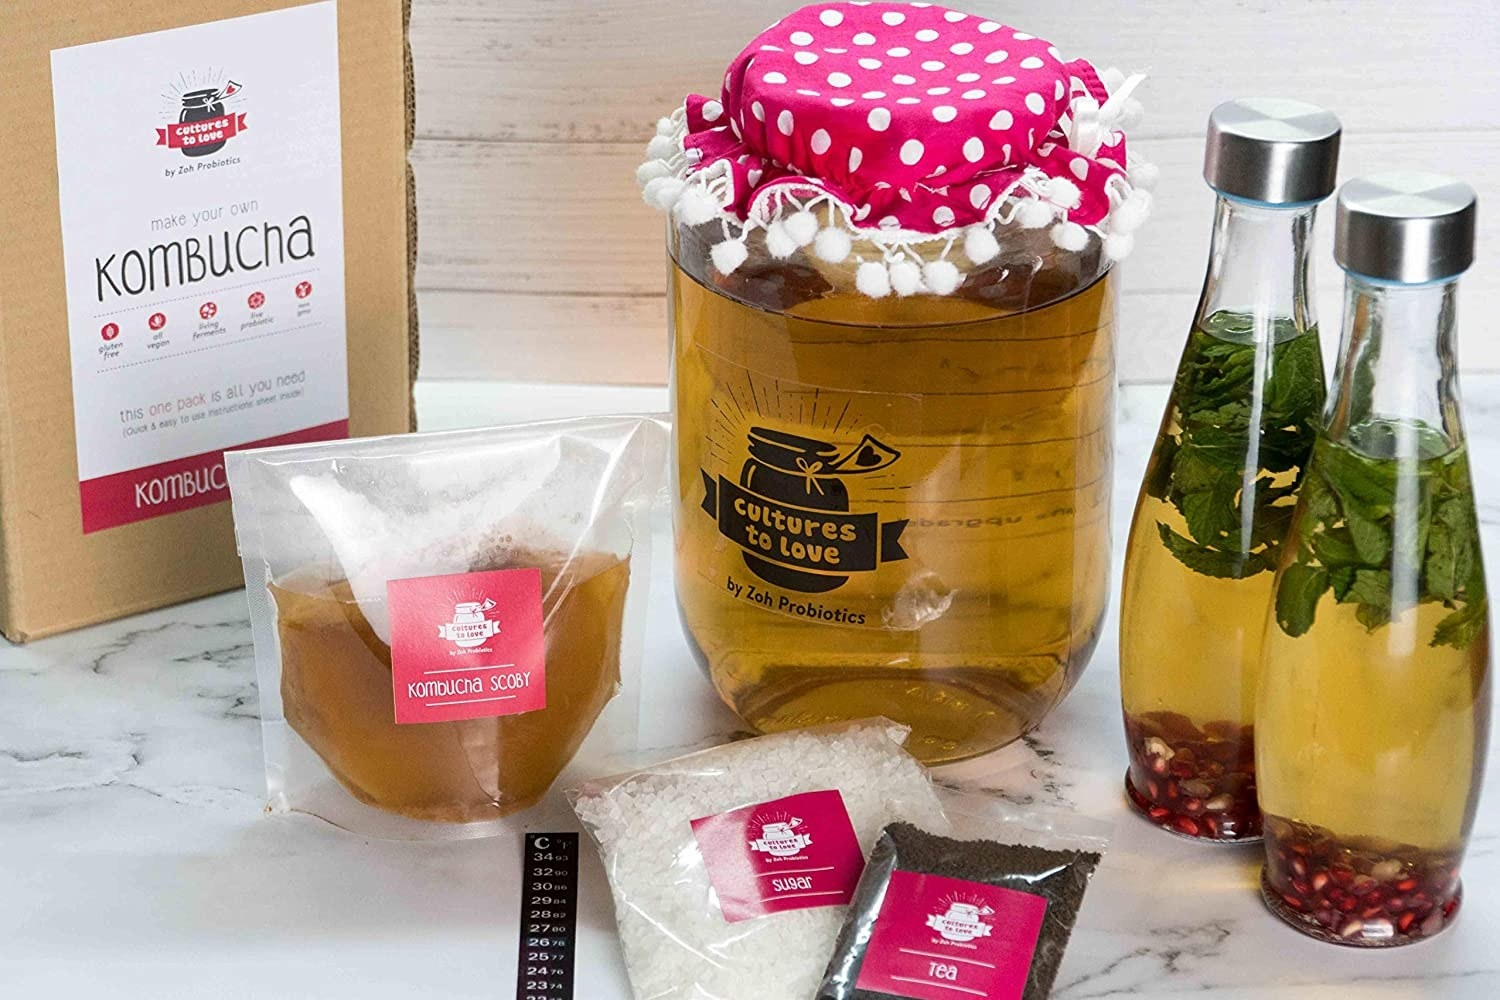 The kombucha brewing kit with the box, the SCOBY in a packet, jar and two bottles with Kombucha in them